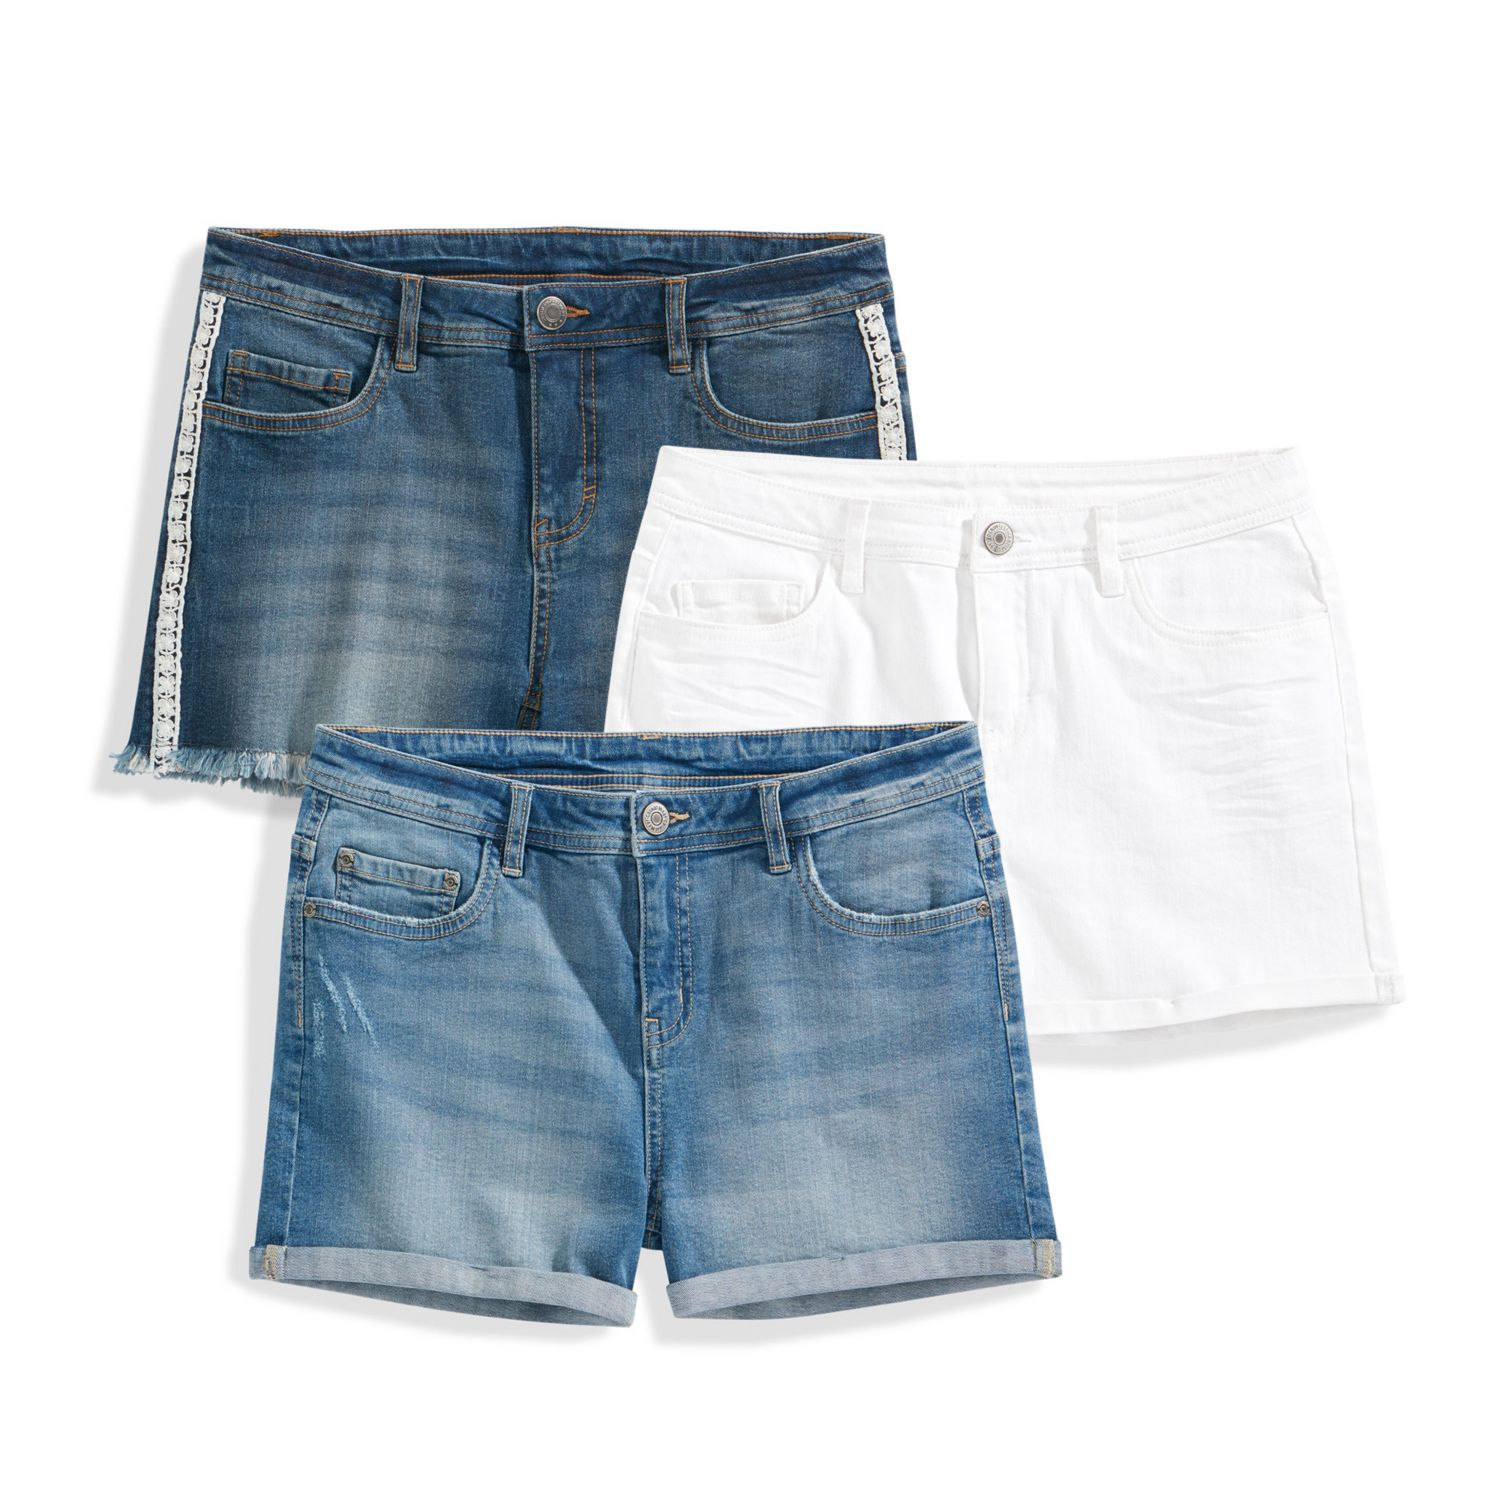 BLUE MOTION Damen-Jeans-Shorts